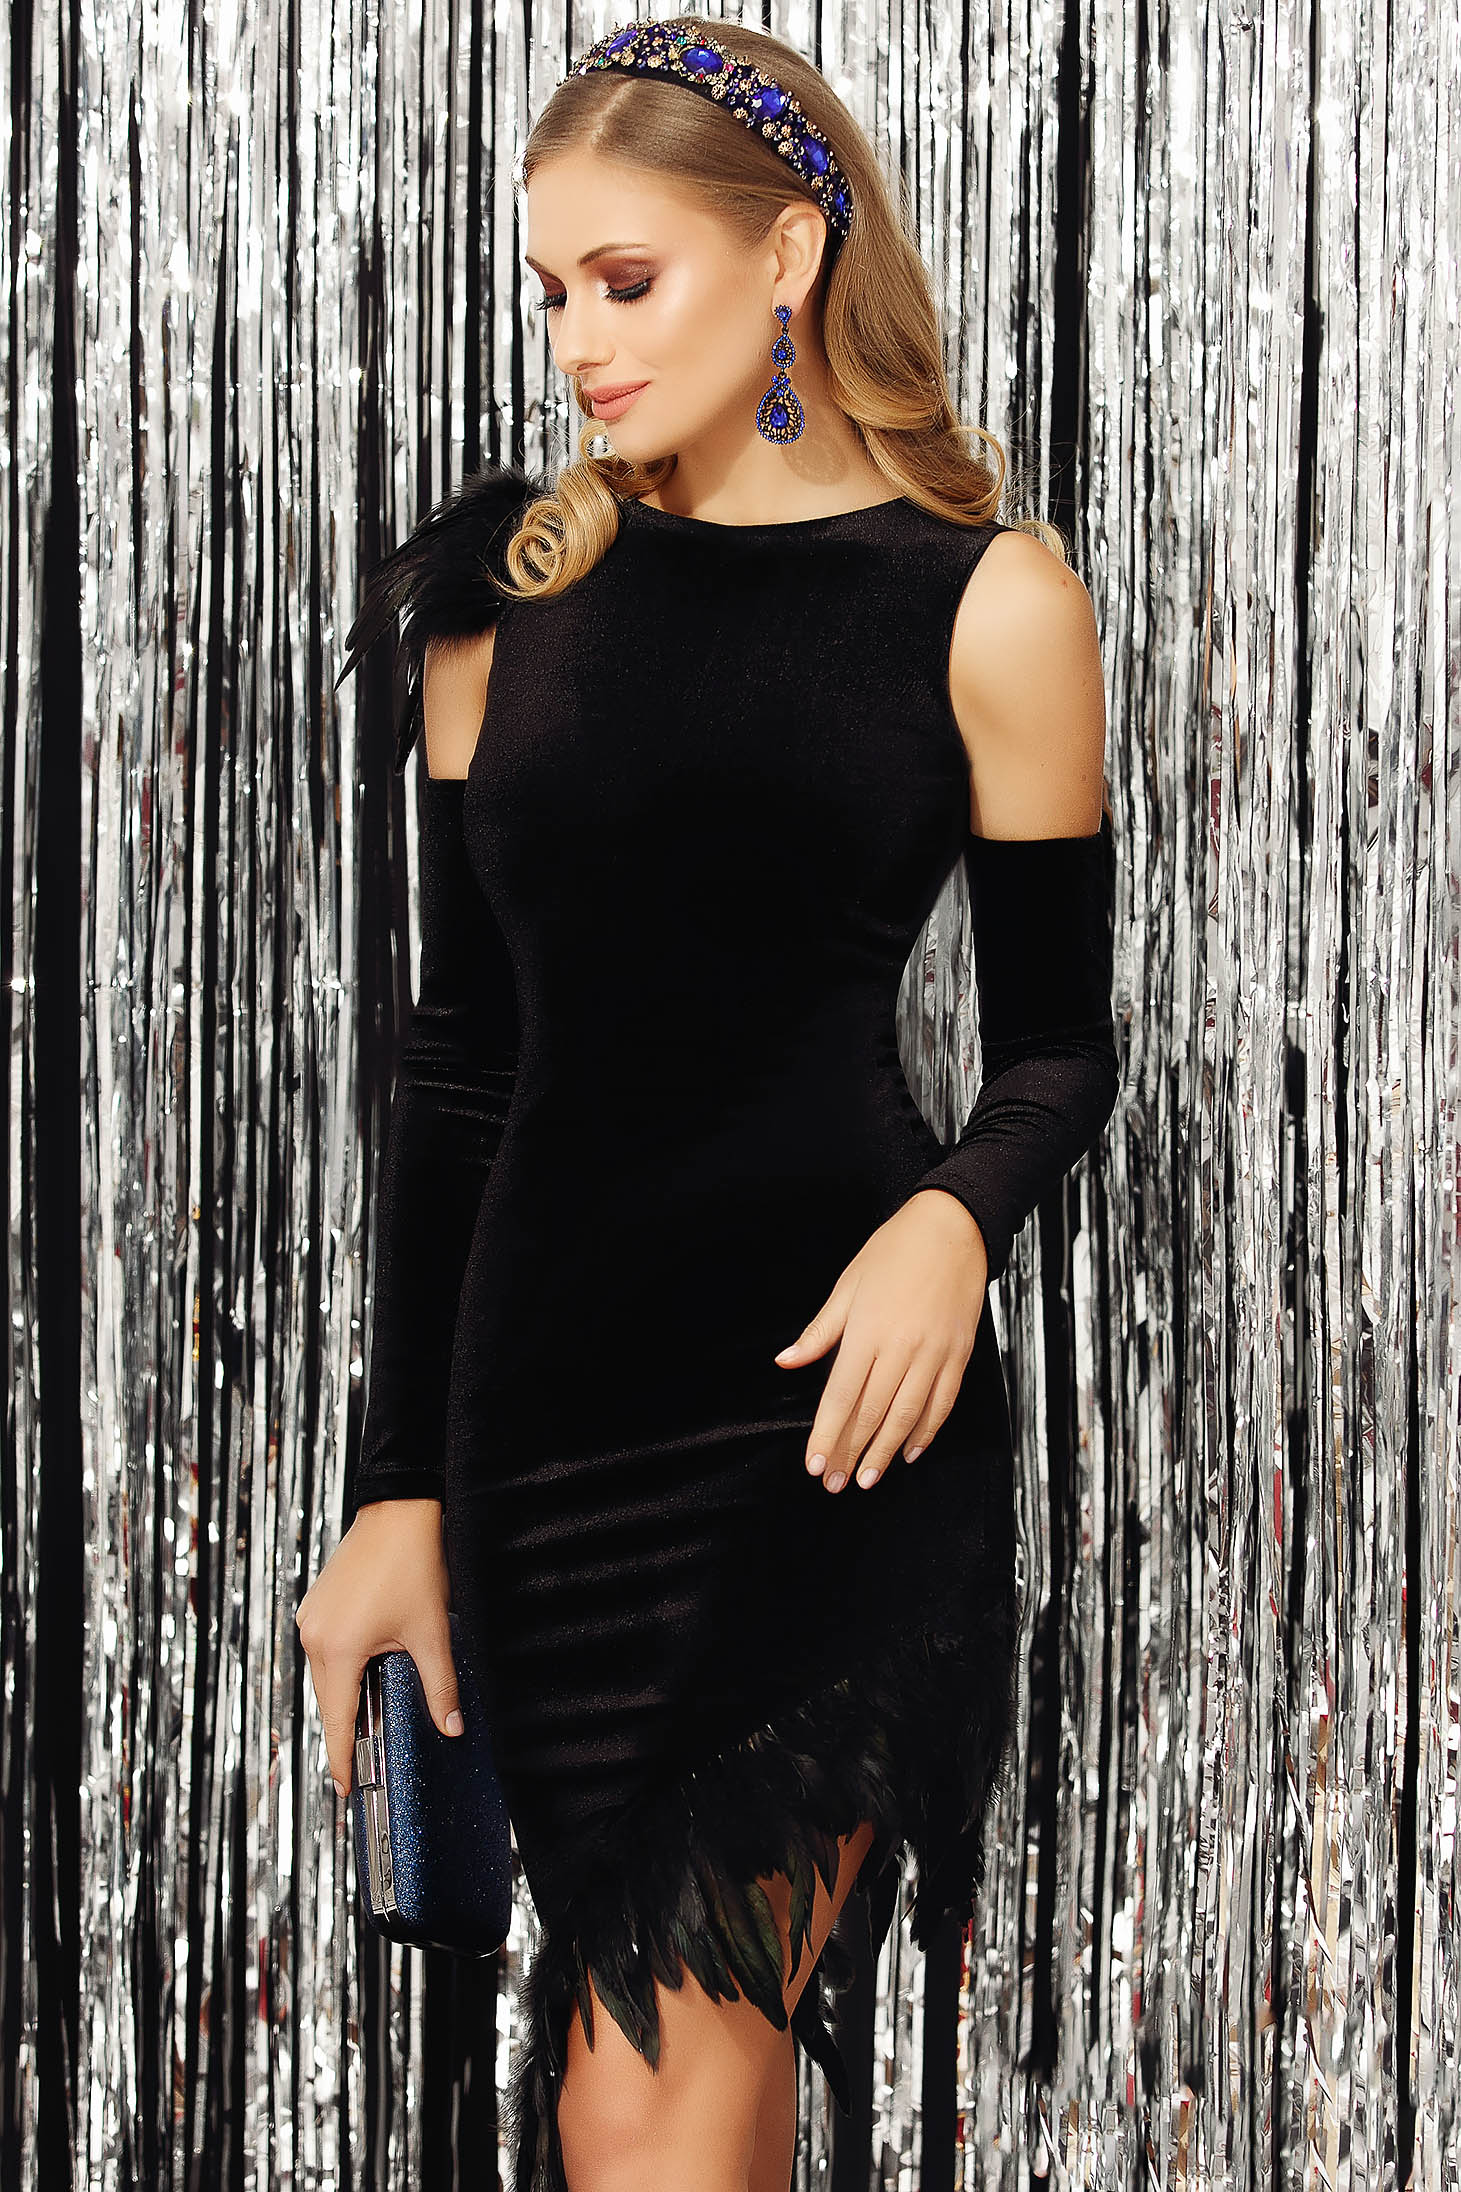 Dress black occasional from velvet arched cut asymmetrical both shoulders cut out feather details